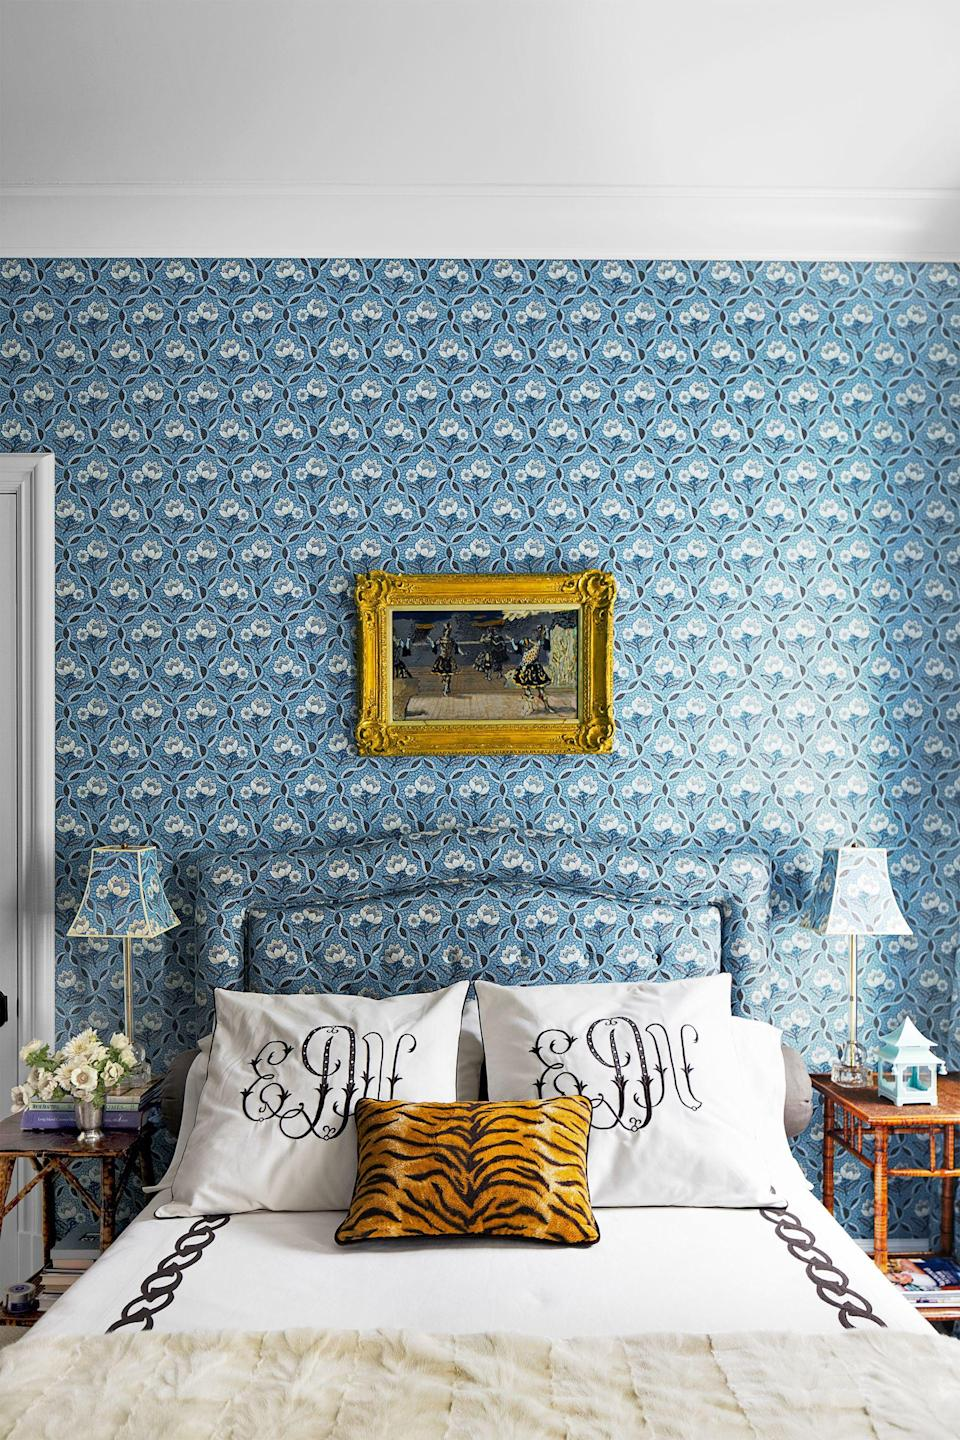 "<p>Since your <a href=""https://www.housebeautiful.com/lifestyle/fun-at-home/a1087/master-bedroom-politically-incorrect/"" rel=""nofollow noopener"" target=""_blank"" data-ylk=""slk:main bedroom"" class=""link rapid-noclick-resp"">main bedroom</a> is where you relax, reset, and romance (i.e. arguably the most important things you do in your house), you want to make sure it looks the part and works hard. If you're in need of some fresh<a href=""https://www.housebeautiful.com/room-decorating/bedrooms/g648/beautiful-designer-bedrooms/"" rel=""nofollow noopener"" target=""_blank"" data-ylk=""slk:main bedroom"" class=""link rapid-noclick-resp""> main bedroom</a> inspiration, you've come to the right place. Whether you want a complete overhaul or just some styling and <a href=""https://www.housebeautiful.com/room-decorating/colors/g1287/colorful-bedroom-decorating-ideas/"" rel=""nofollow noopener"" target=""_blank"" data-ylk=""slk:color palette ideas"" class=""link rapid-noclick-resp"">color palette ideas</a>, these designer rooms will get you excited and ready to start the project. Read on to see which main bedroom tips and ideas speak to your personal style, and then bring them into your own home. </p>"